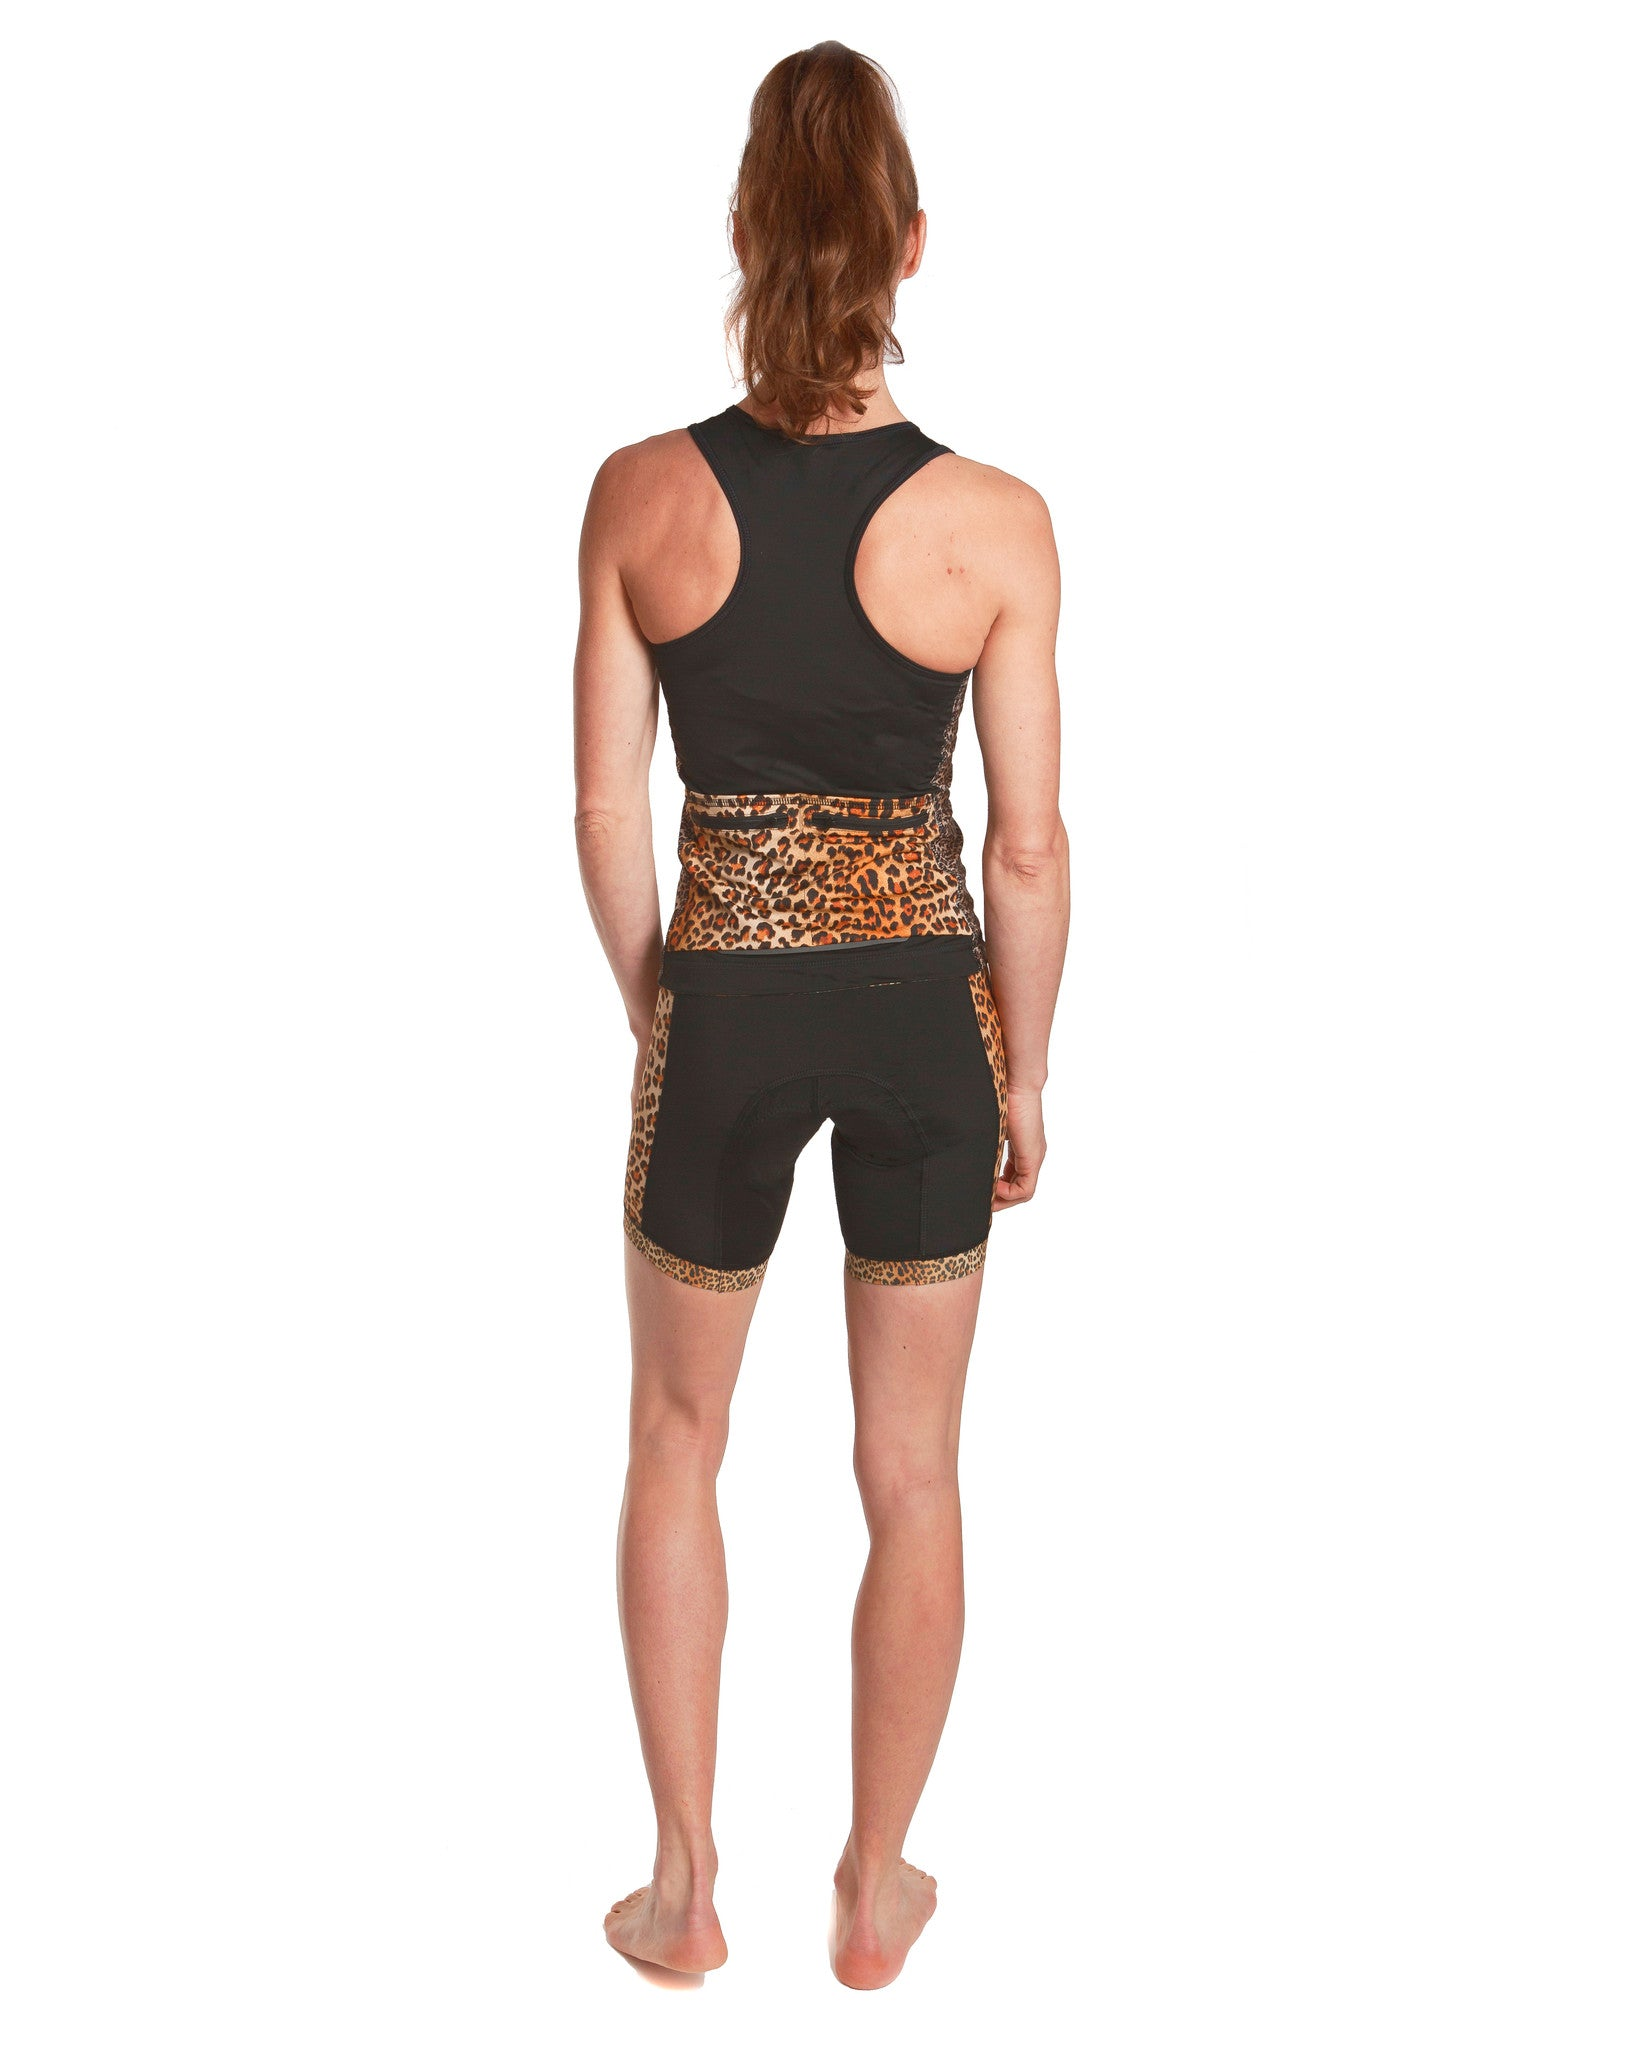 LPRD Black Tank Top Leopard Panel | Back View